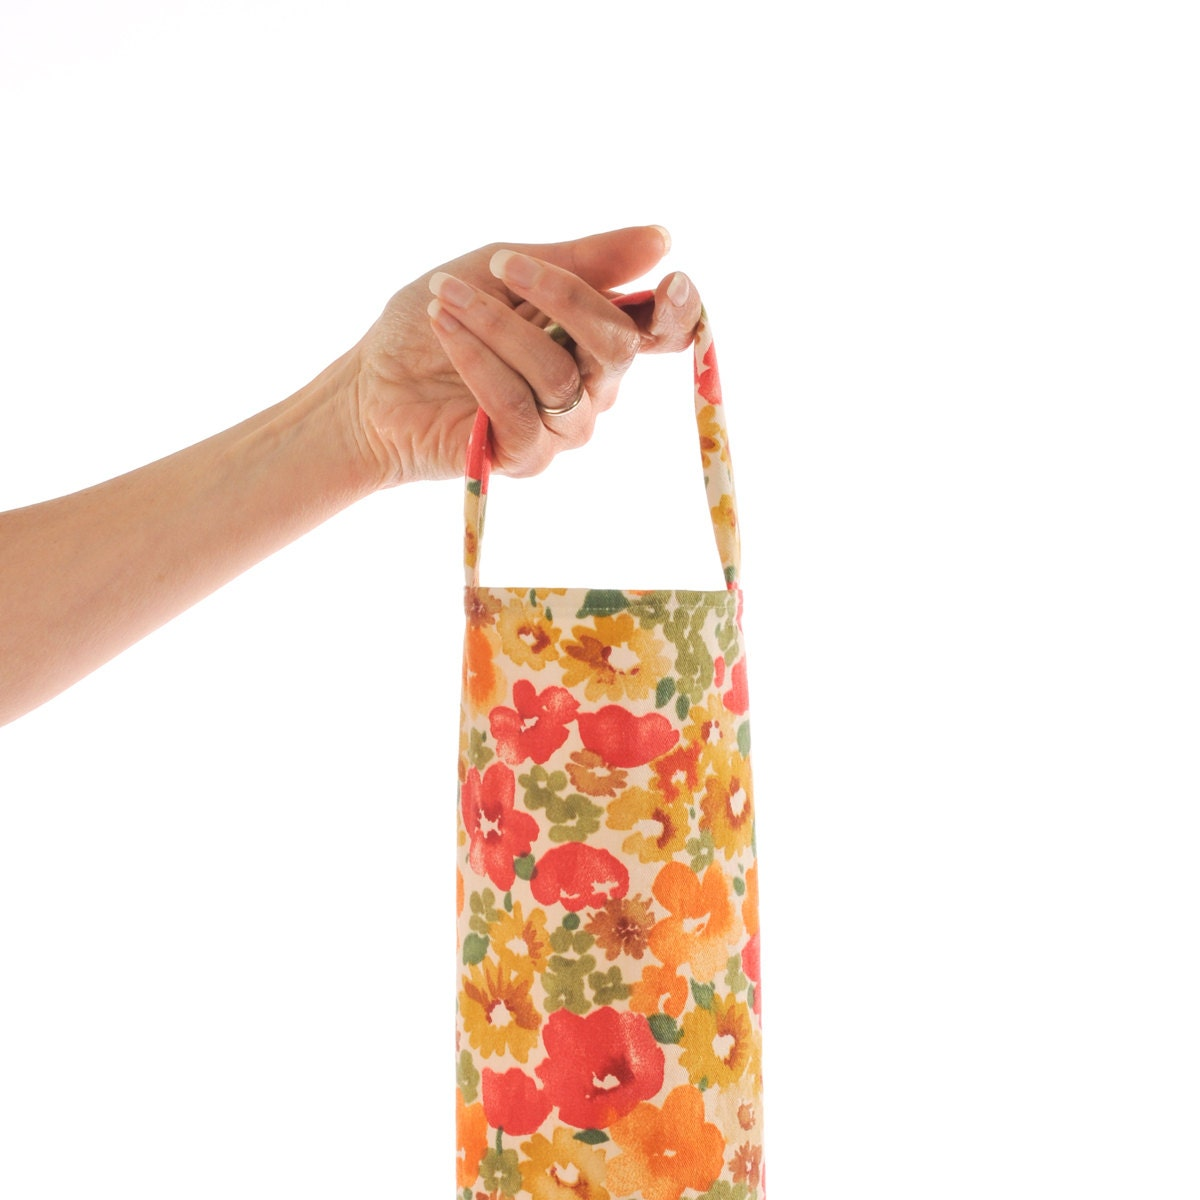 Floral pattern grocery bag holder poppy red orange plastic